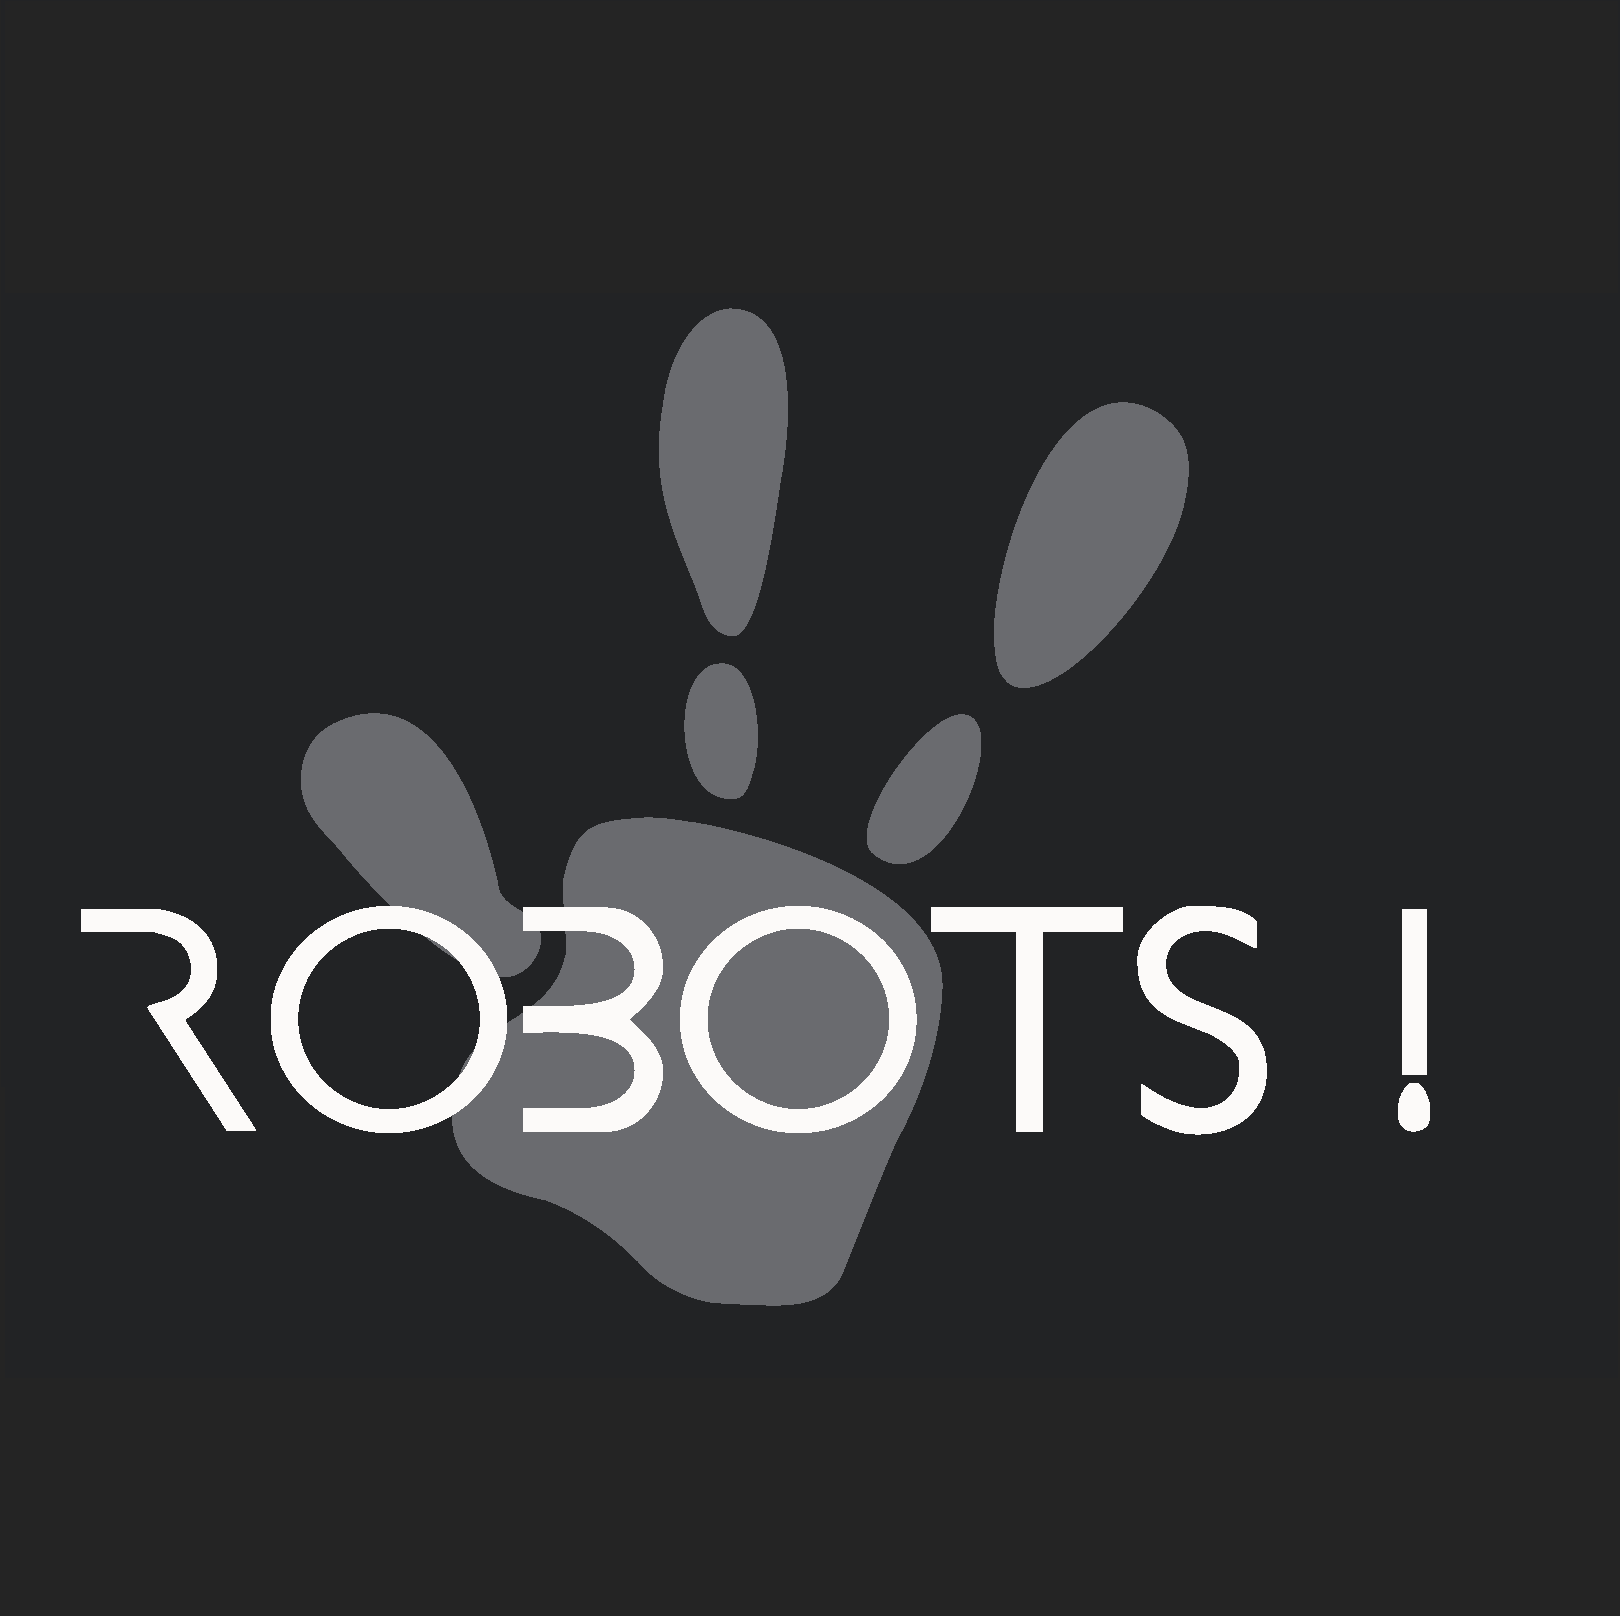 Association - Robots!